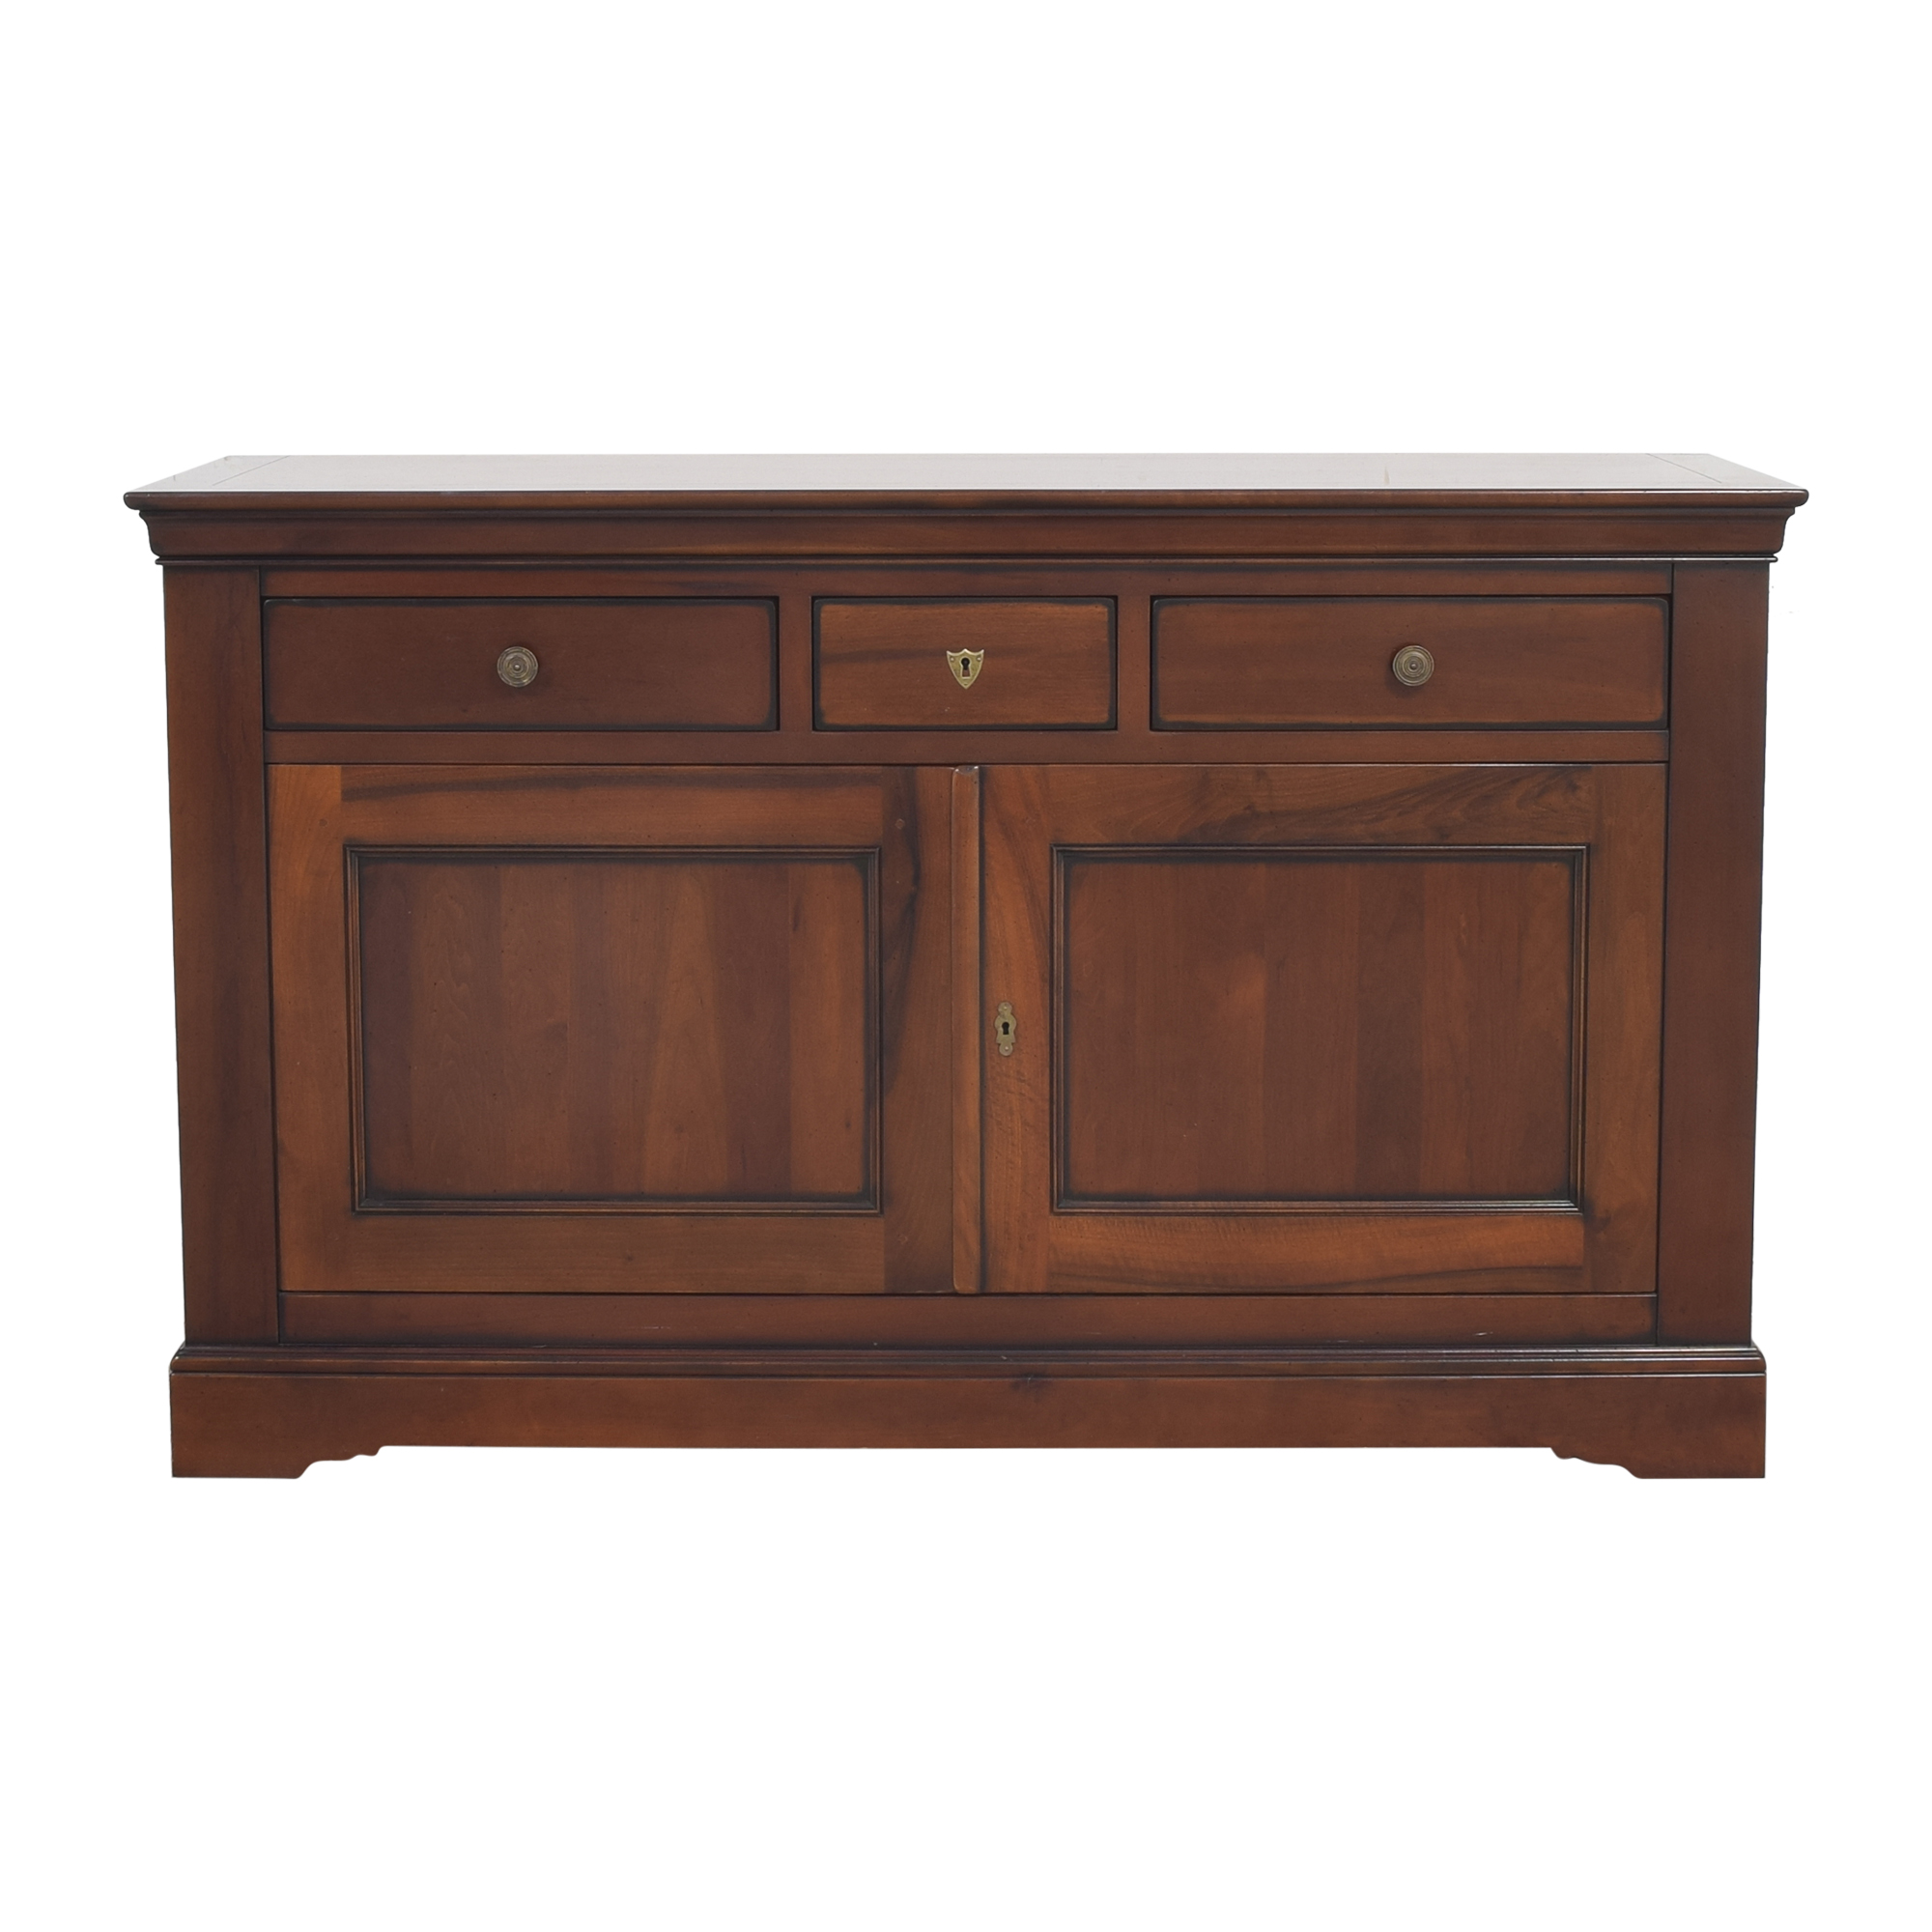 shop Grange Grange French Sideboard with Cabinets online